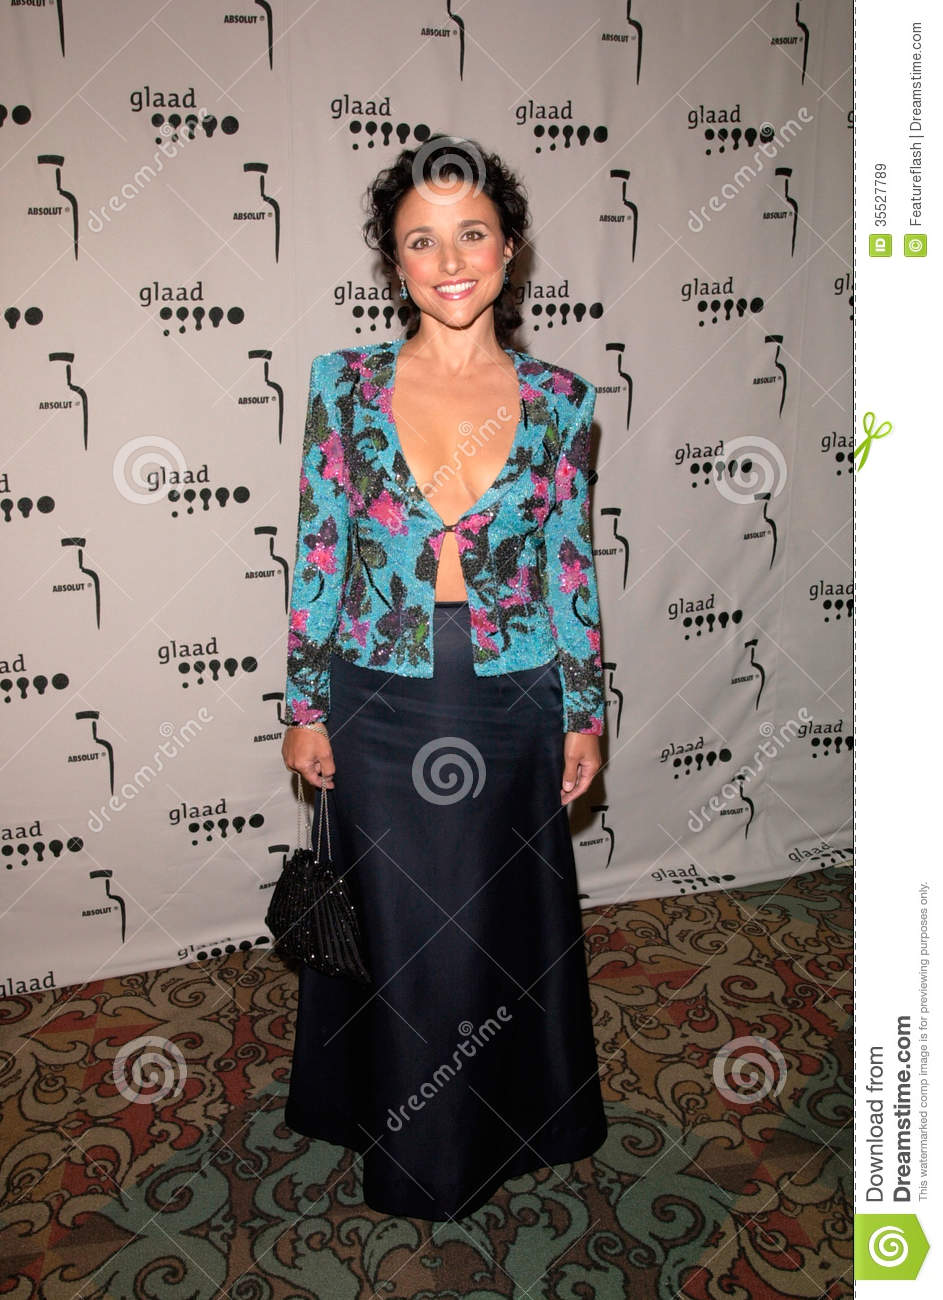 JULIA LOUIS-DREYFUS at the Gay & Lesbian Alliance Against Defamation ...: www.dreamstime.com/royalty-free-stock-images-julia-louis-dreyfus...